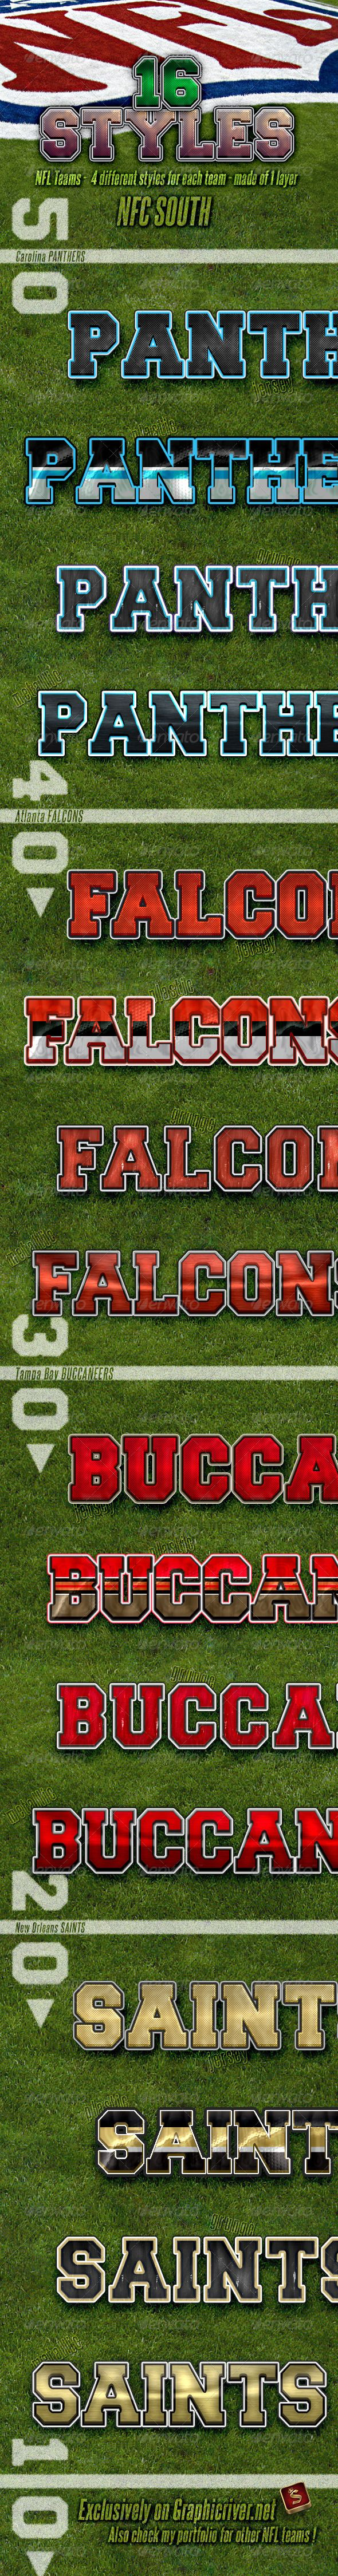 NFL Football Styles - NFC South #GraphicRiver NFL Football Photoshop Layer Styles – Part 7 NFC SOUTH NFL Football Photoshop layer styles –are the best for your titles, buttons, shapes, etc. Styles are usable for any Text and it also looks good on Shapes or Buttons. Don't forget to check all parts of NFL Team Styles NFL Football Layer Styles – Features All styles are made of 1 layer only Unique Styles Applicable with just one click Unique look and clean design Can be used anywhere ASL and PSD…